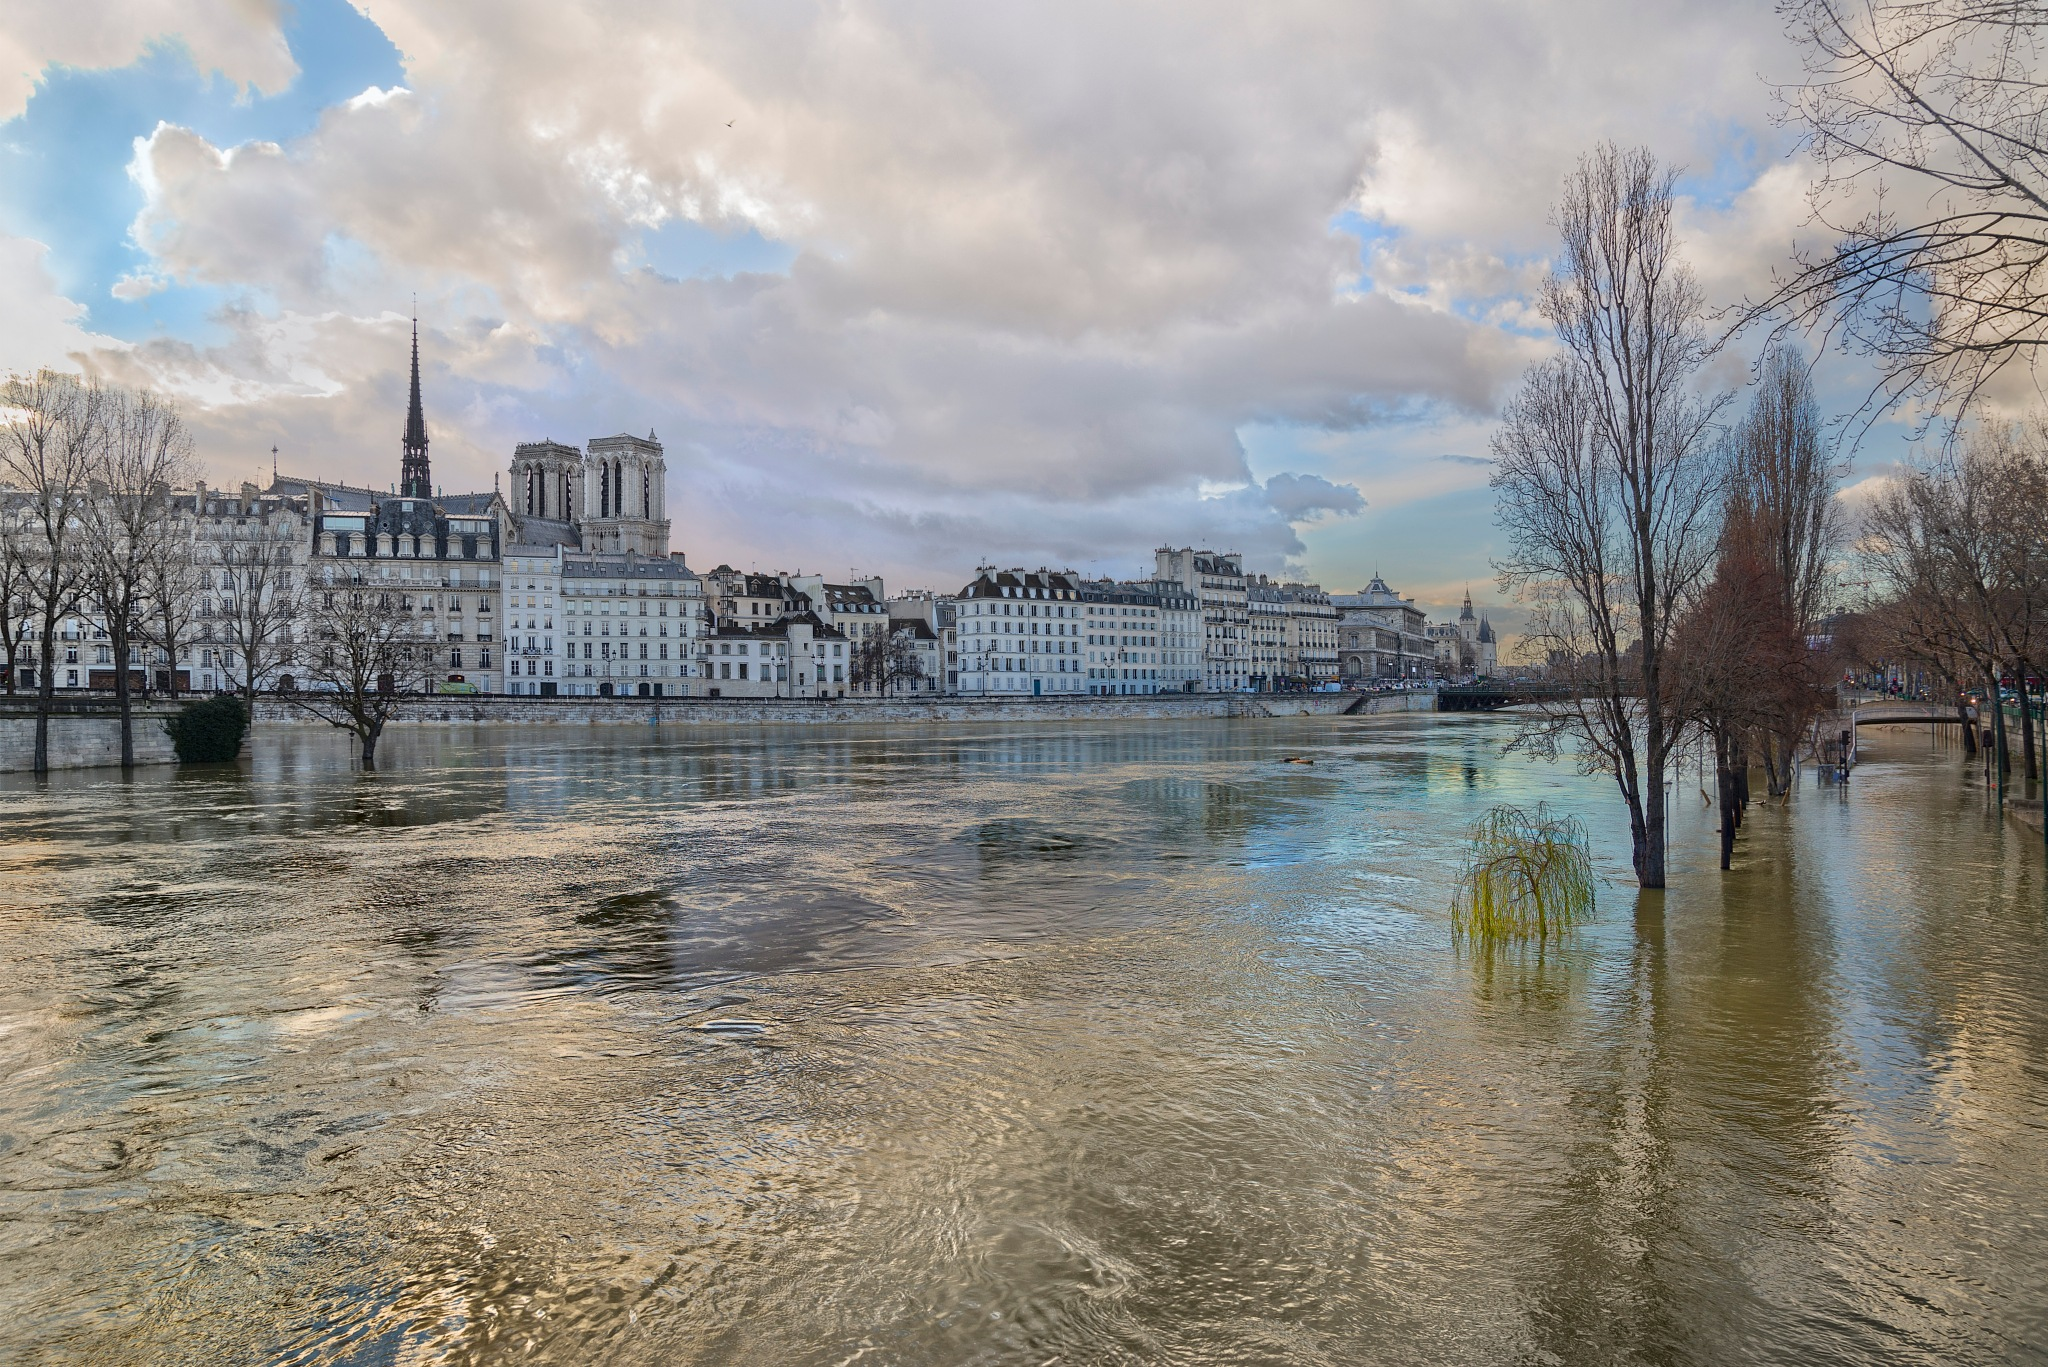 Île de la Cité seen from the Right Bank during the floods of January 2018 by David Henry